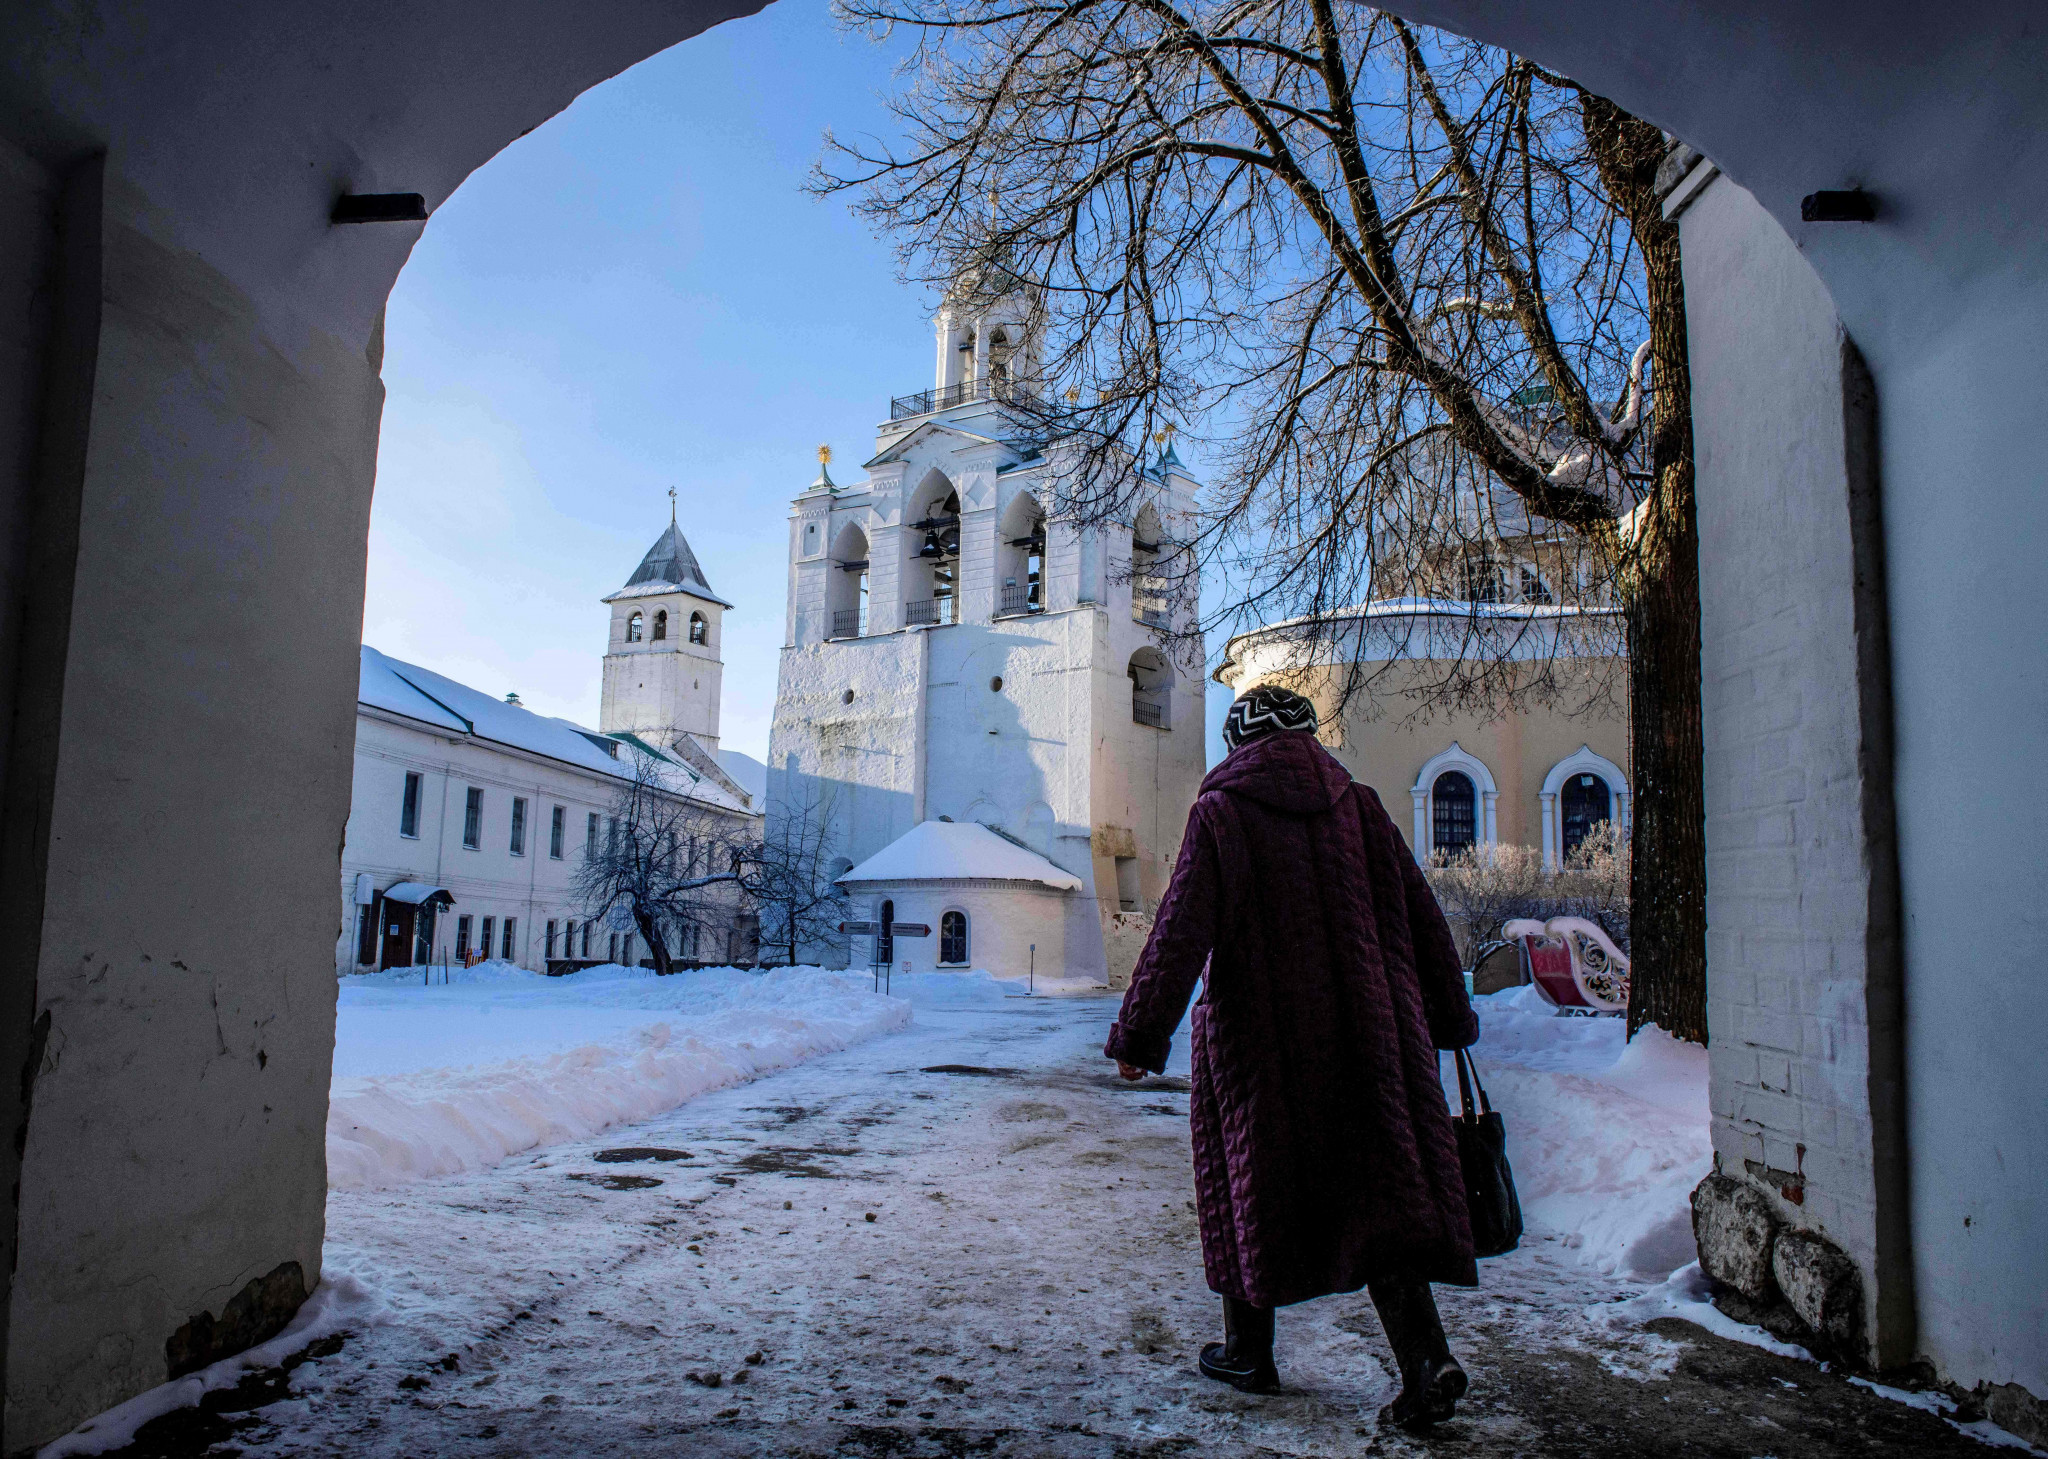 Yaroslavl, northeast of Moscow, boasts three Russian Olympic players in the squad of local team Yaroslavich ©Getty Images